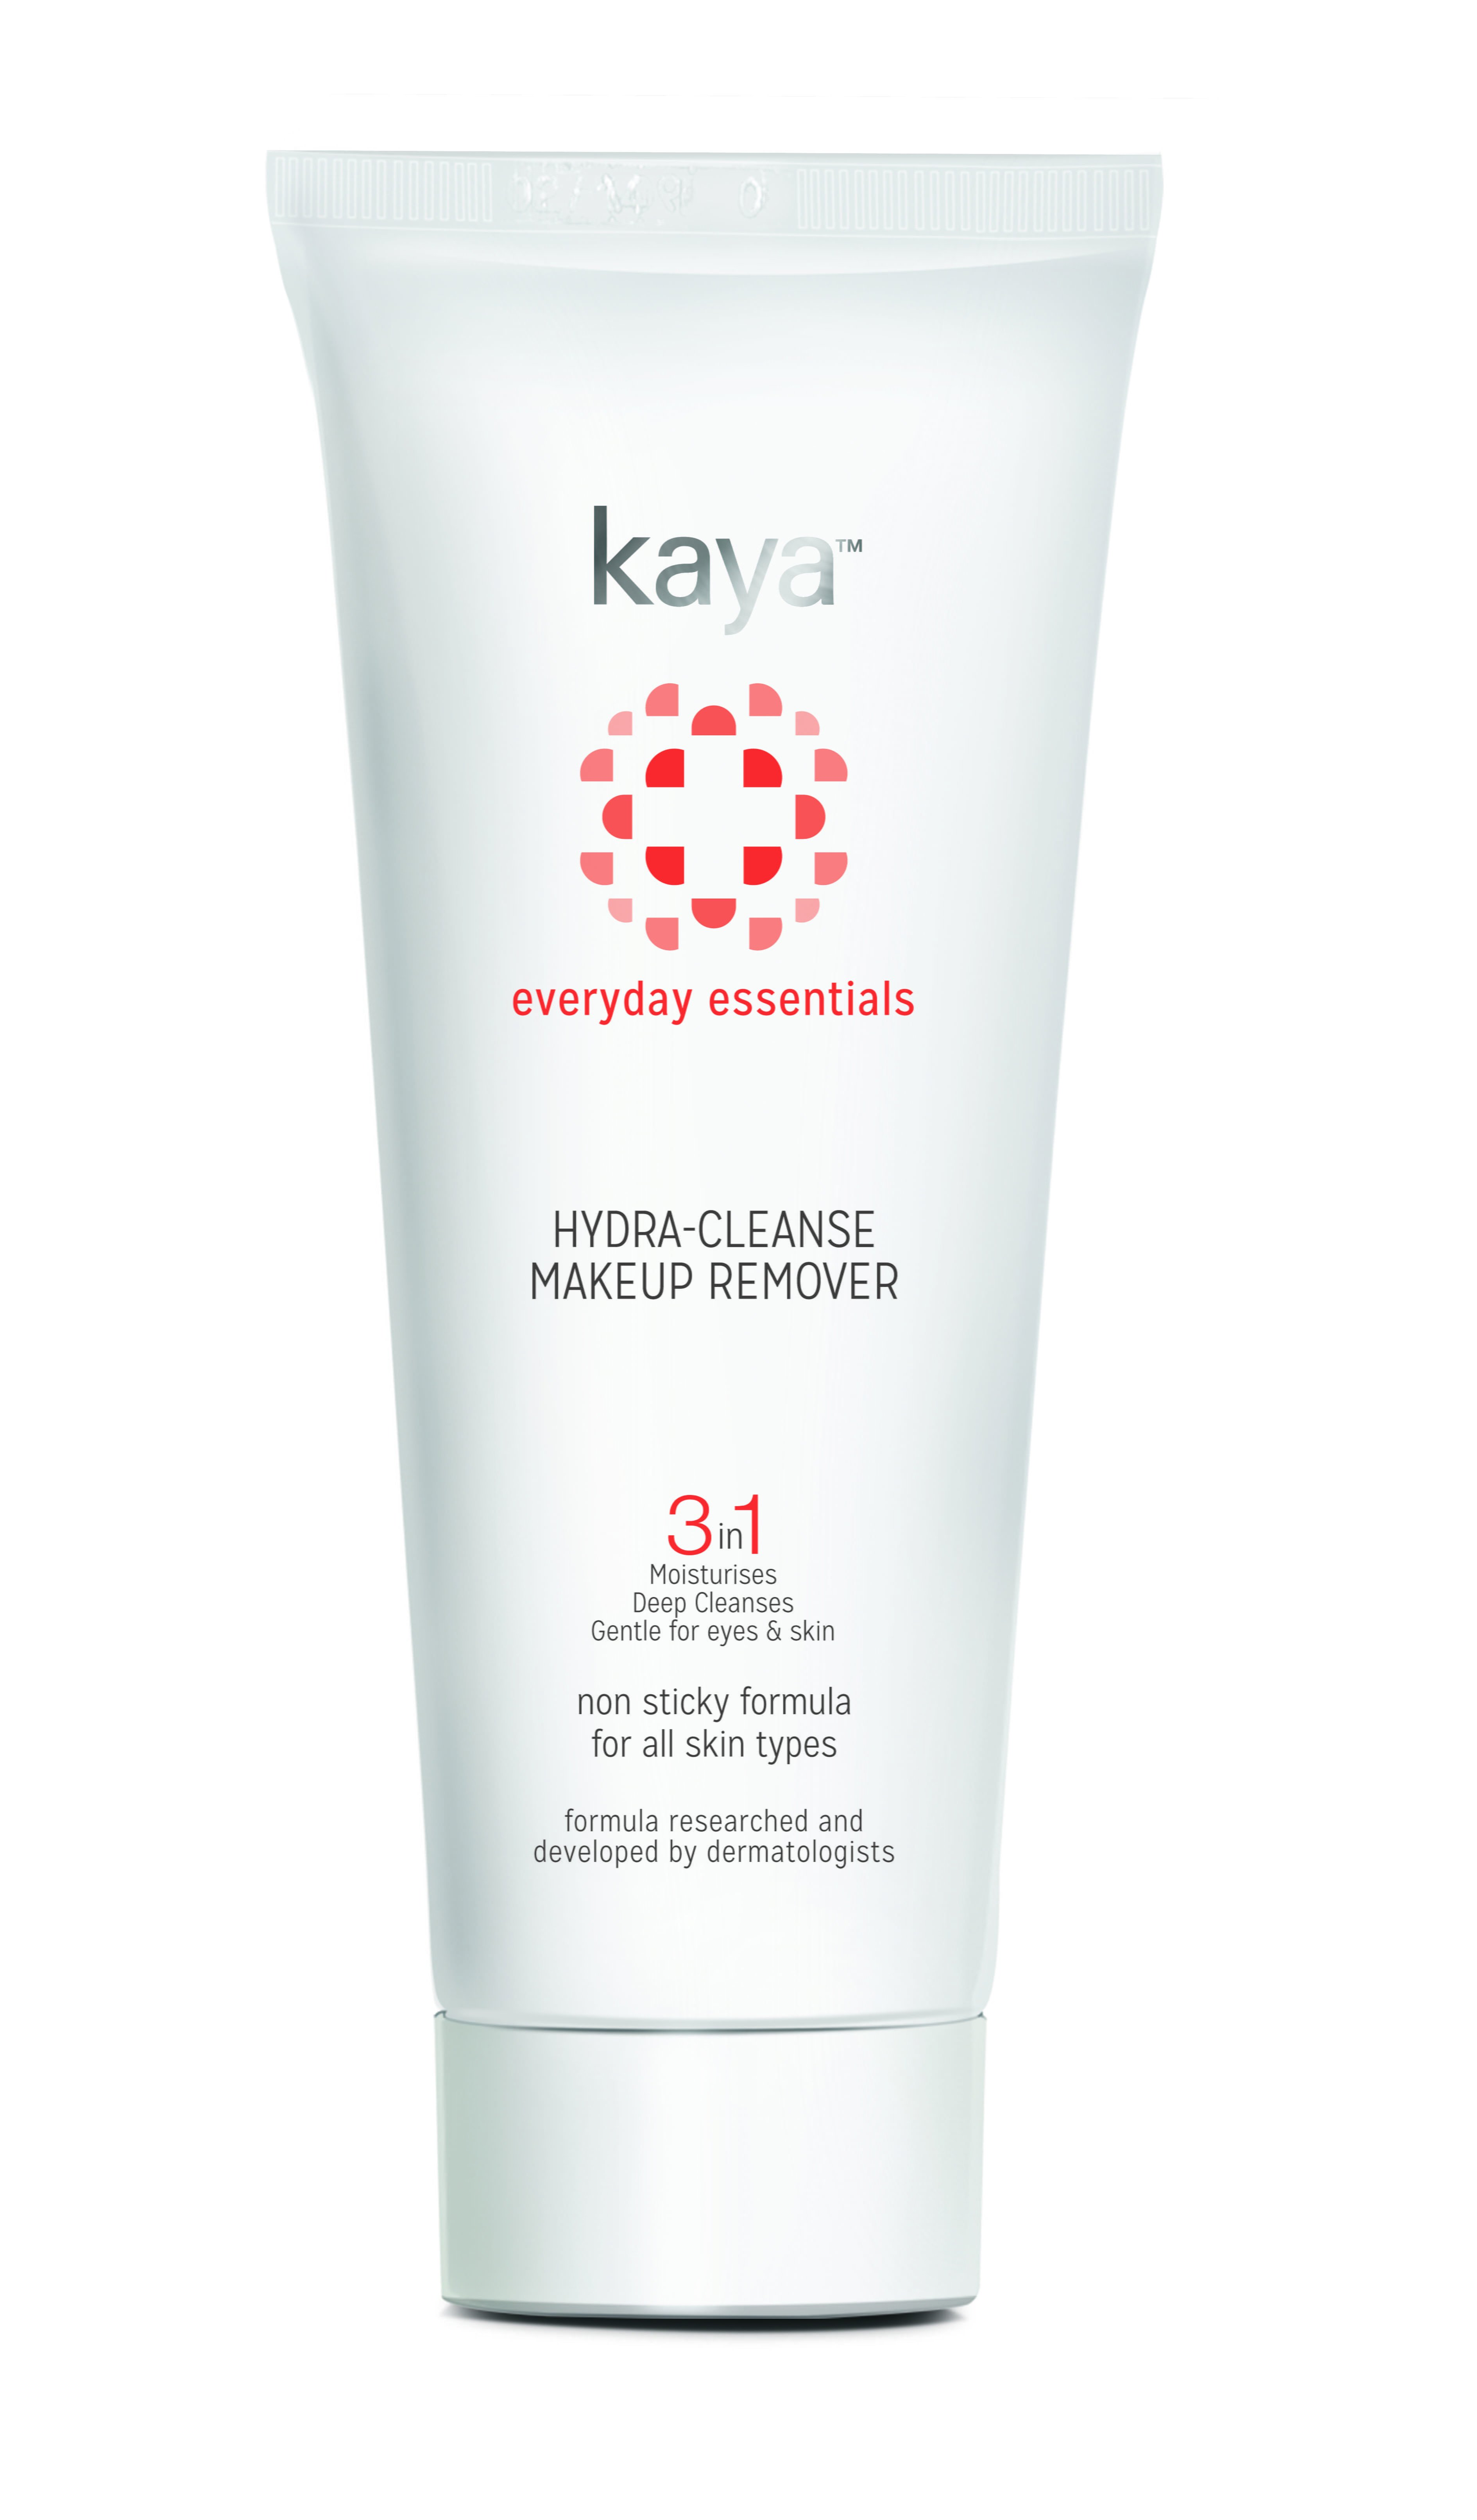 Kaya hydra cleanse makeup remover review